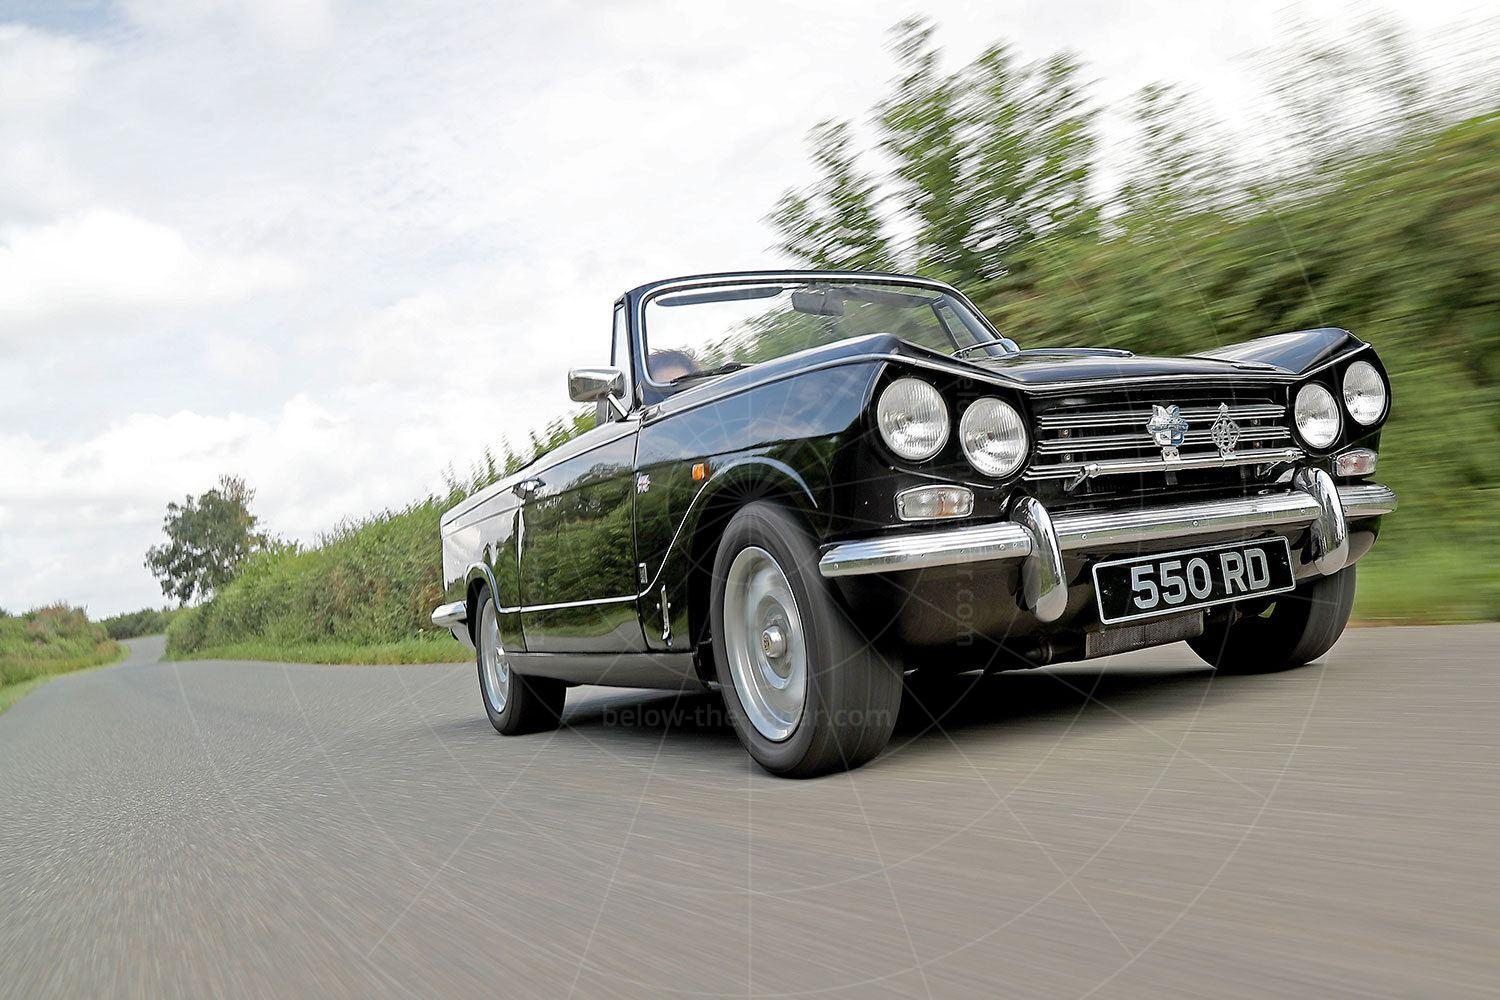 The editor's 1969 Triumph Vitesse 2.5 convertible Pic: magiccarpics.co.uk | The editor's 1969 Triumph Vitesse 2.5 convertible